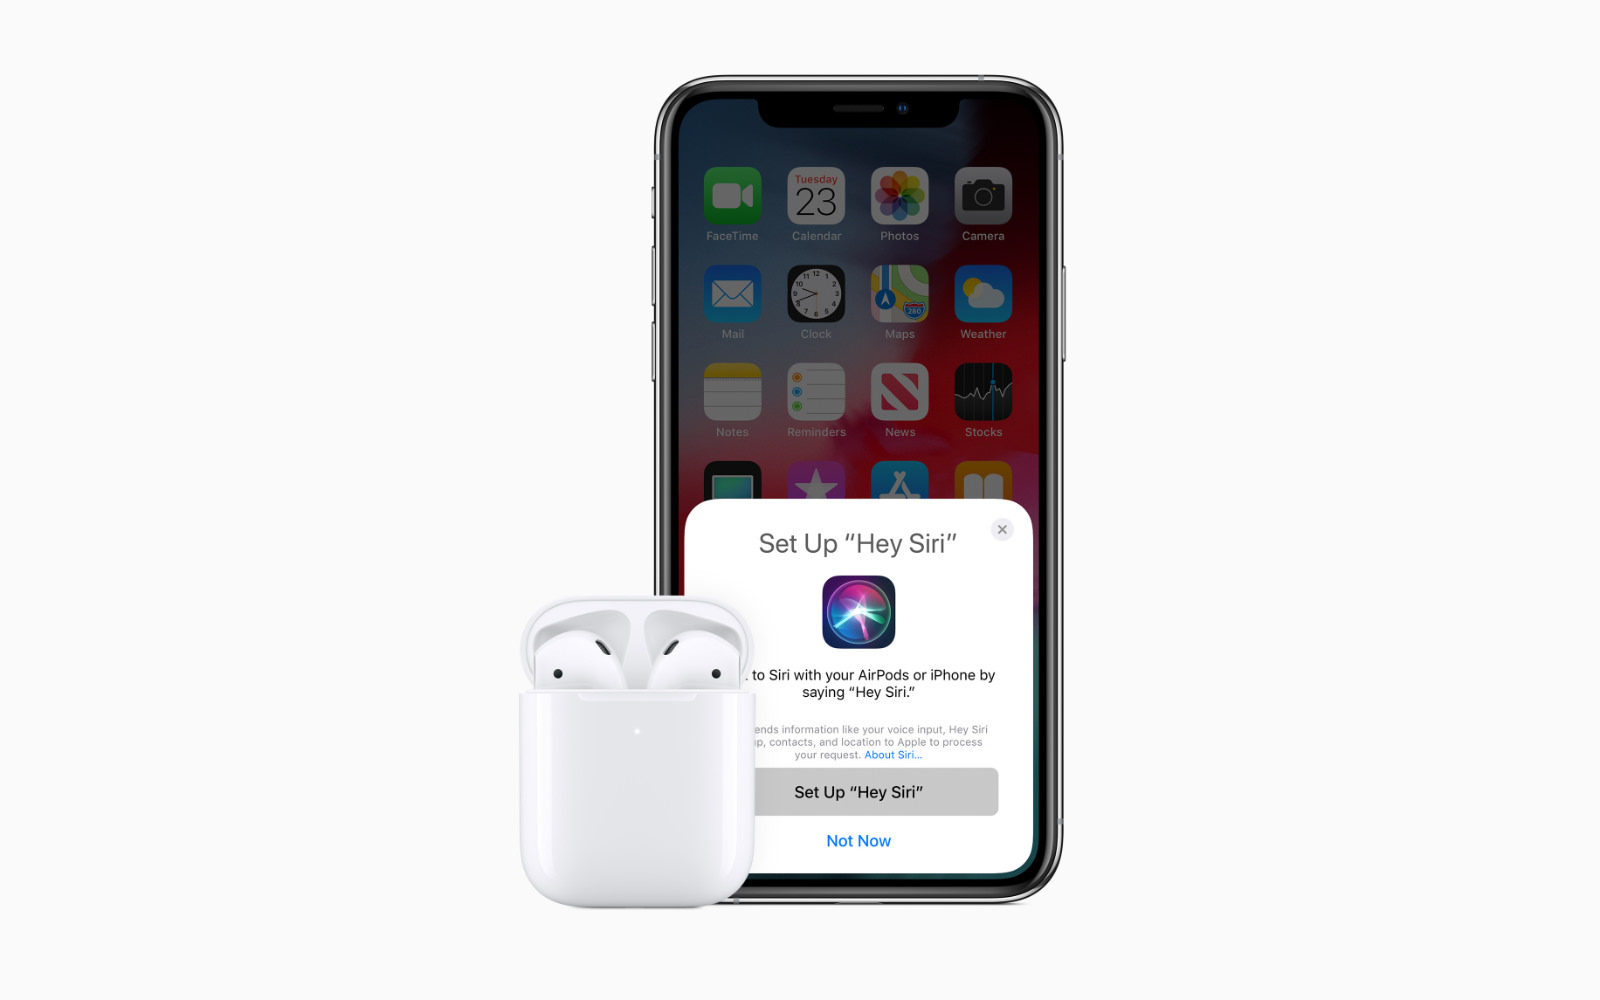 AirPods-with-Wireless-Charging-Case-2.jpg